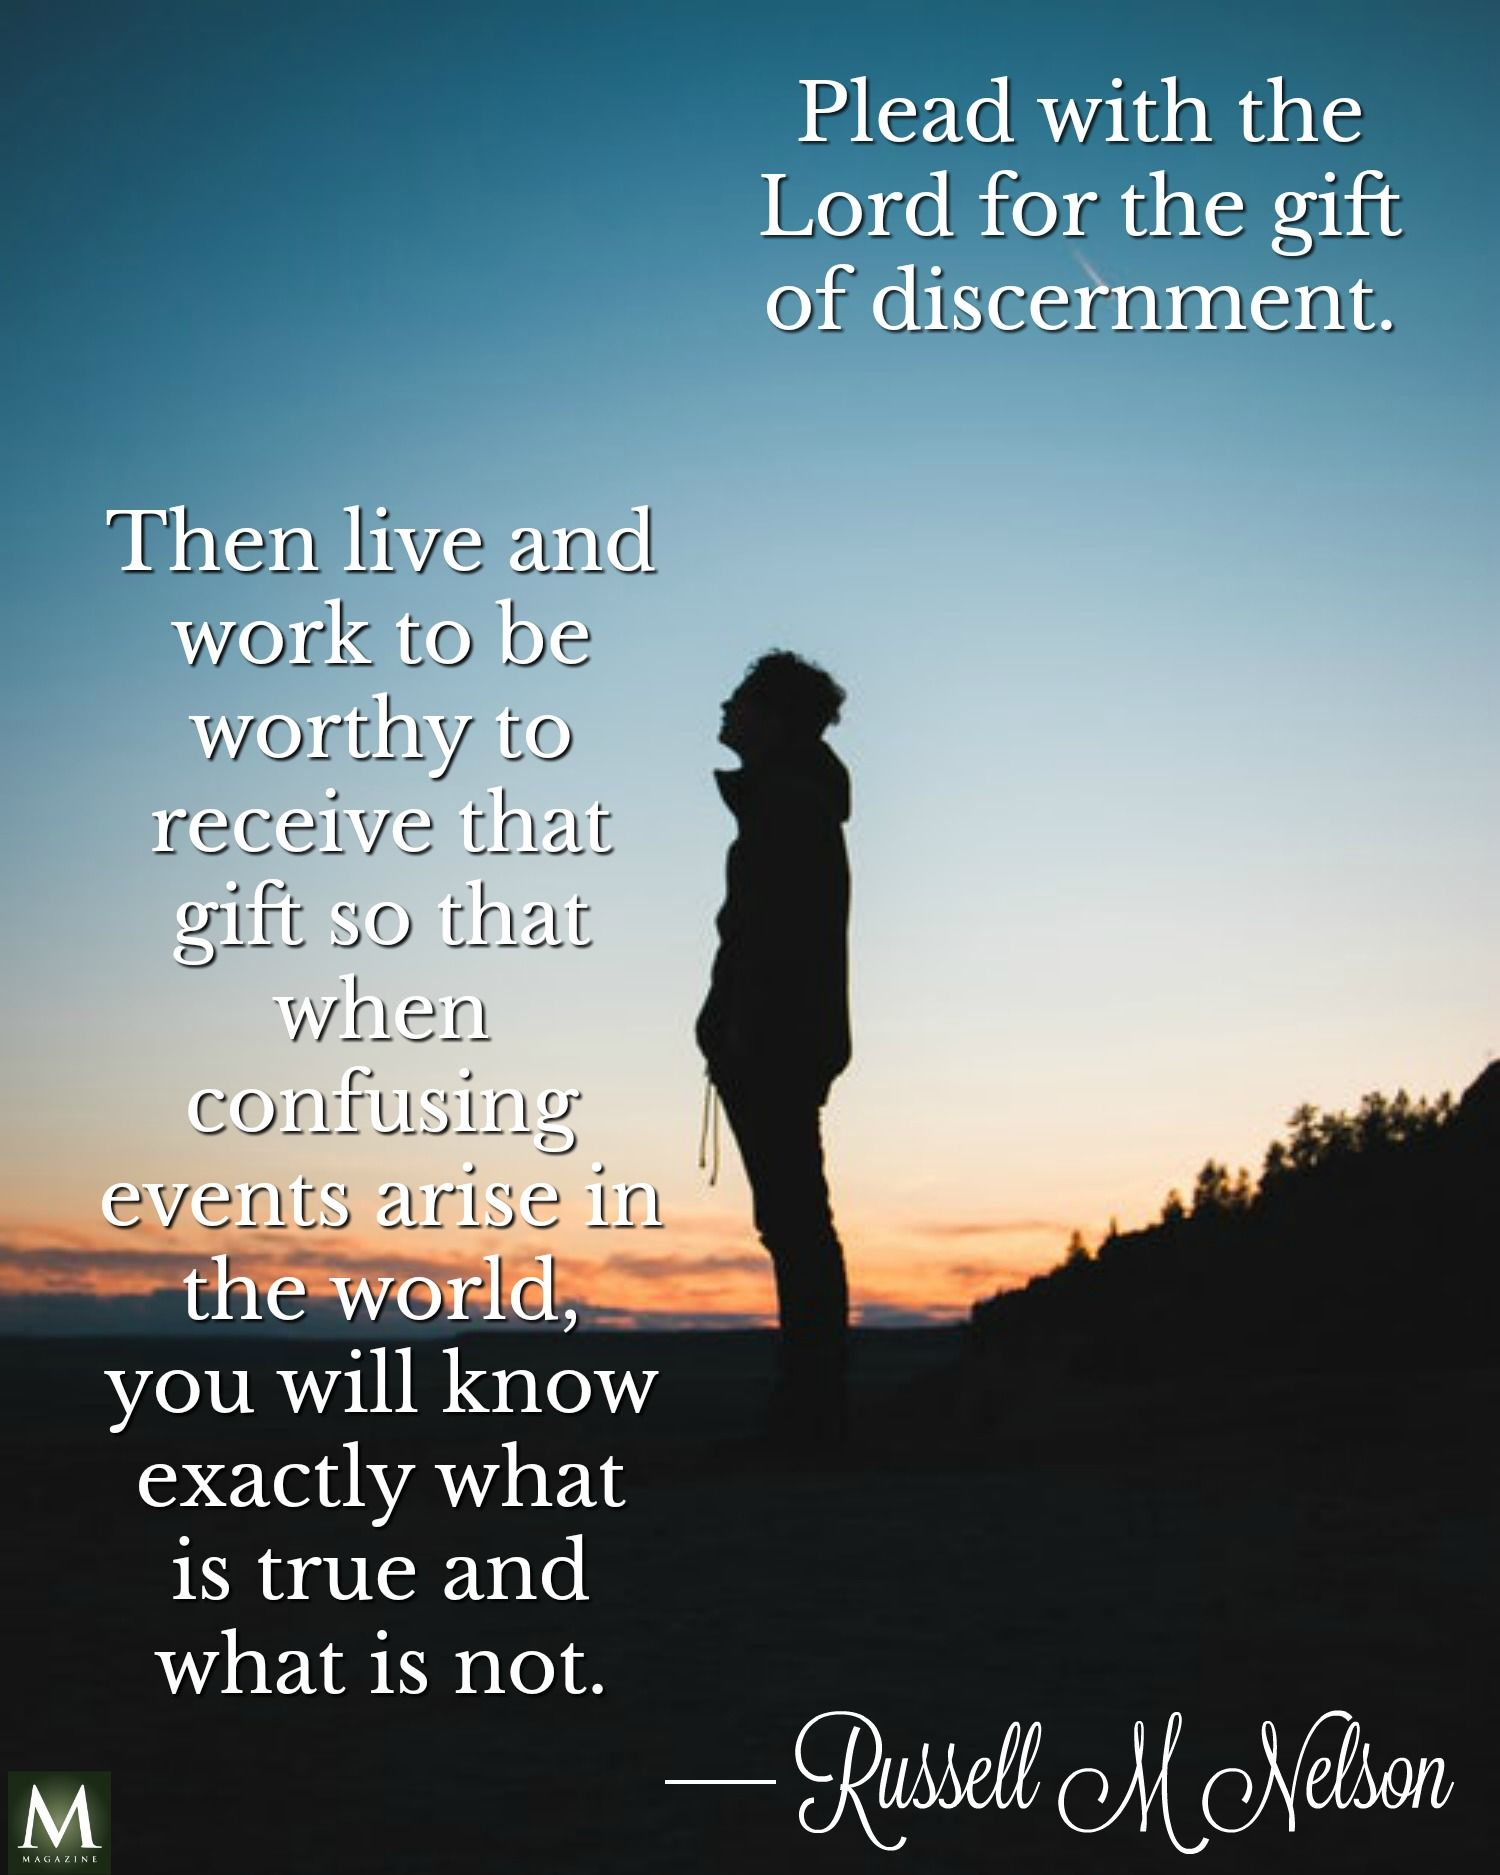 """Plead with the Lord for the gift of discernment. Then live and work to be worthy to receive that gift so that when confusing events arise in the world, ..."